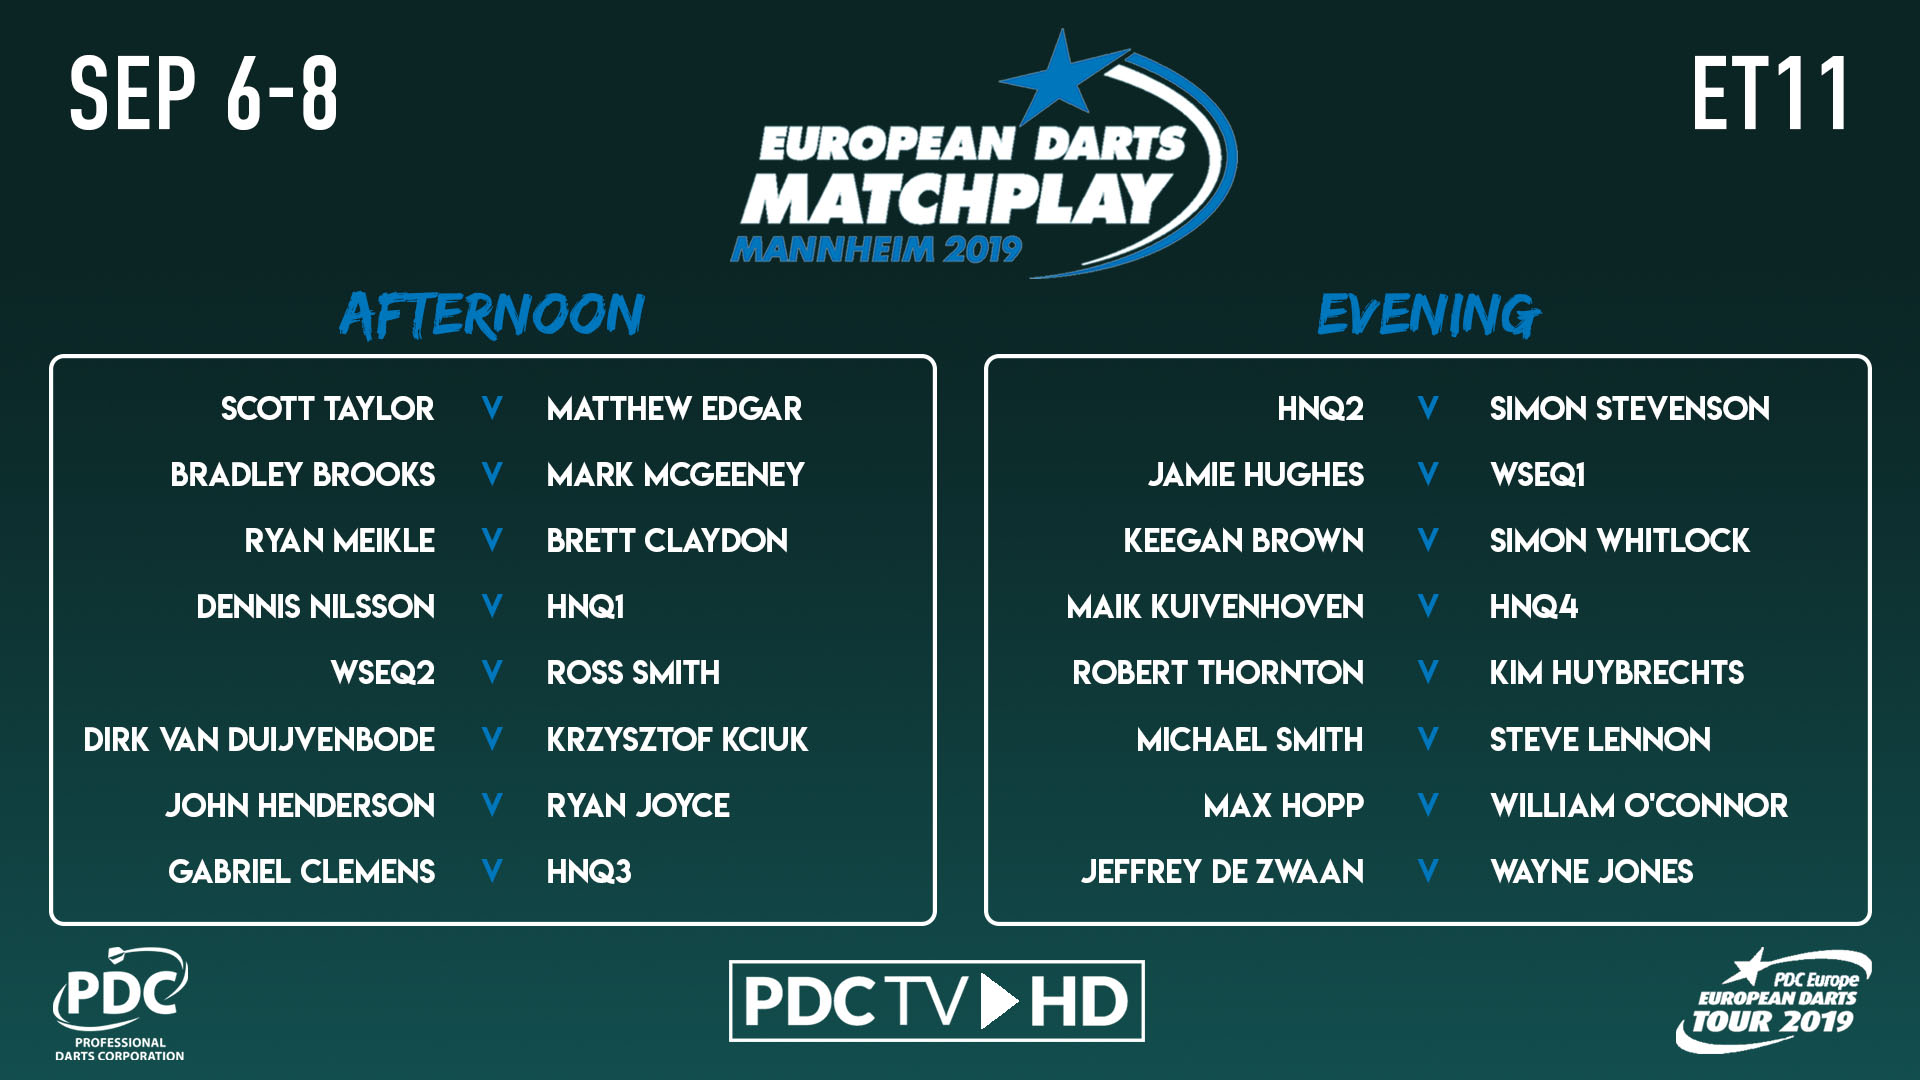 European Darts Matchplay draw (PDC)